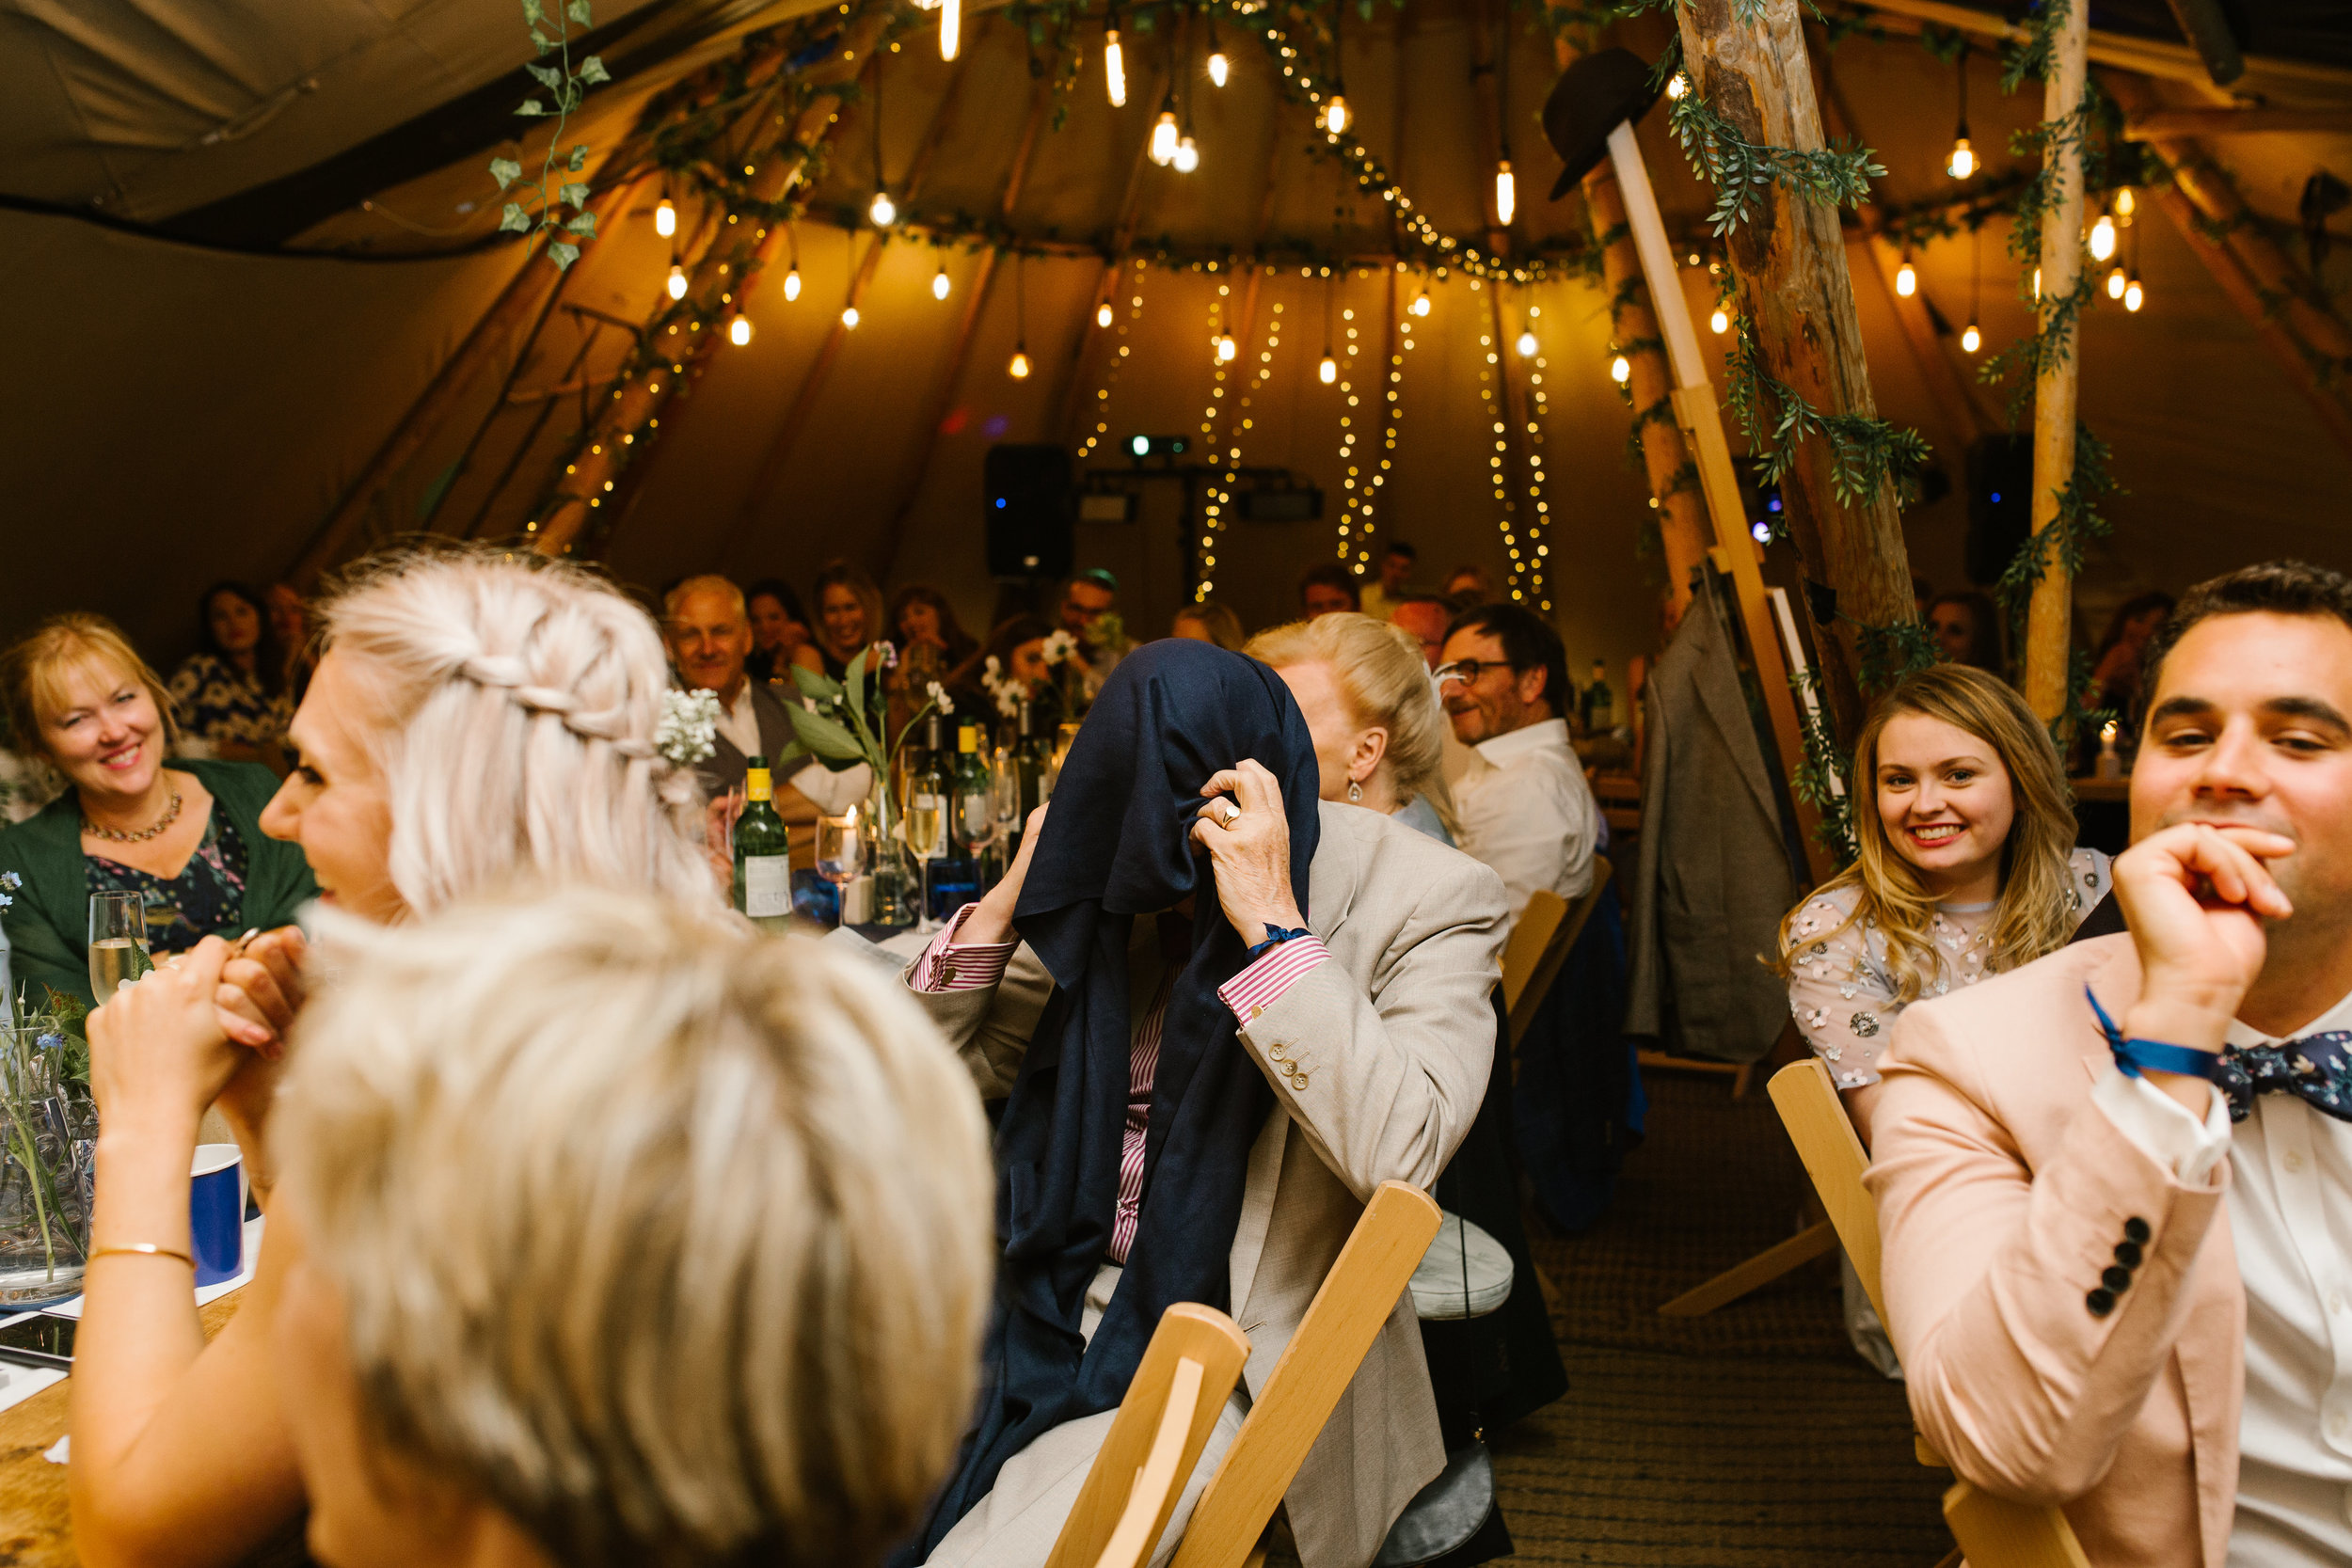 Tipi wedding, teepee wedding, tipi wedding photographer somerset wedding, somerset wedding photographer, cotswolds wedding photographer, DIY wedding, fun wedding, birmingham wedding photographer -418.jpg